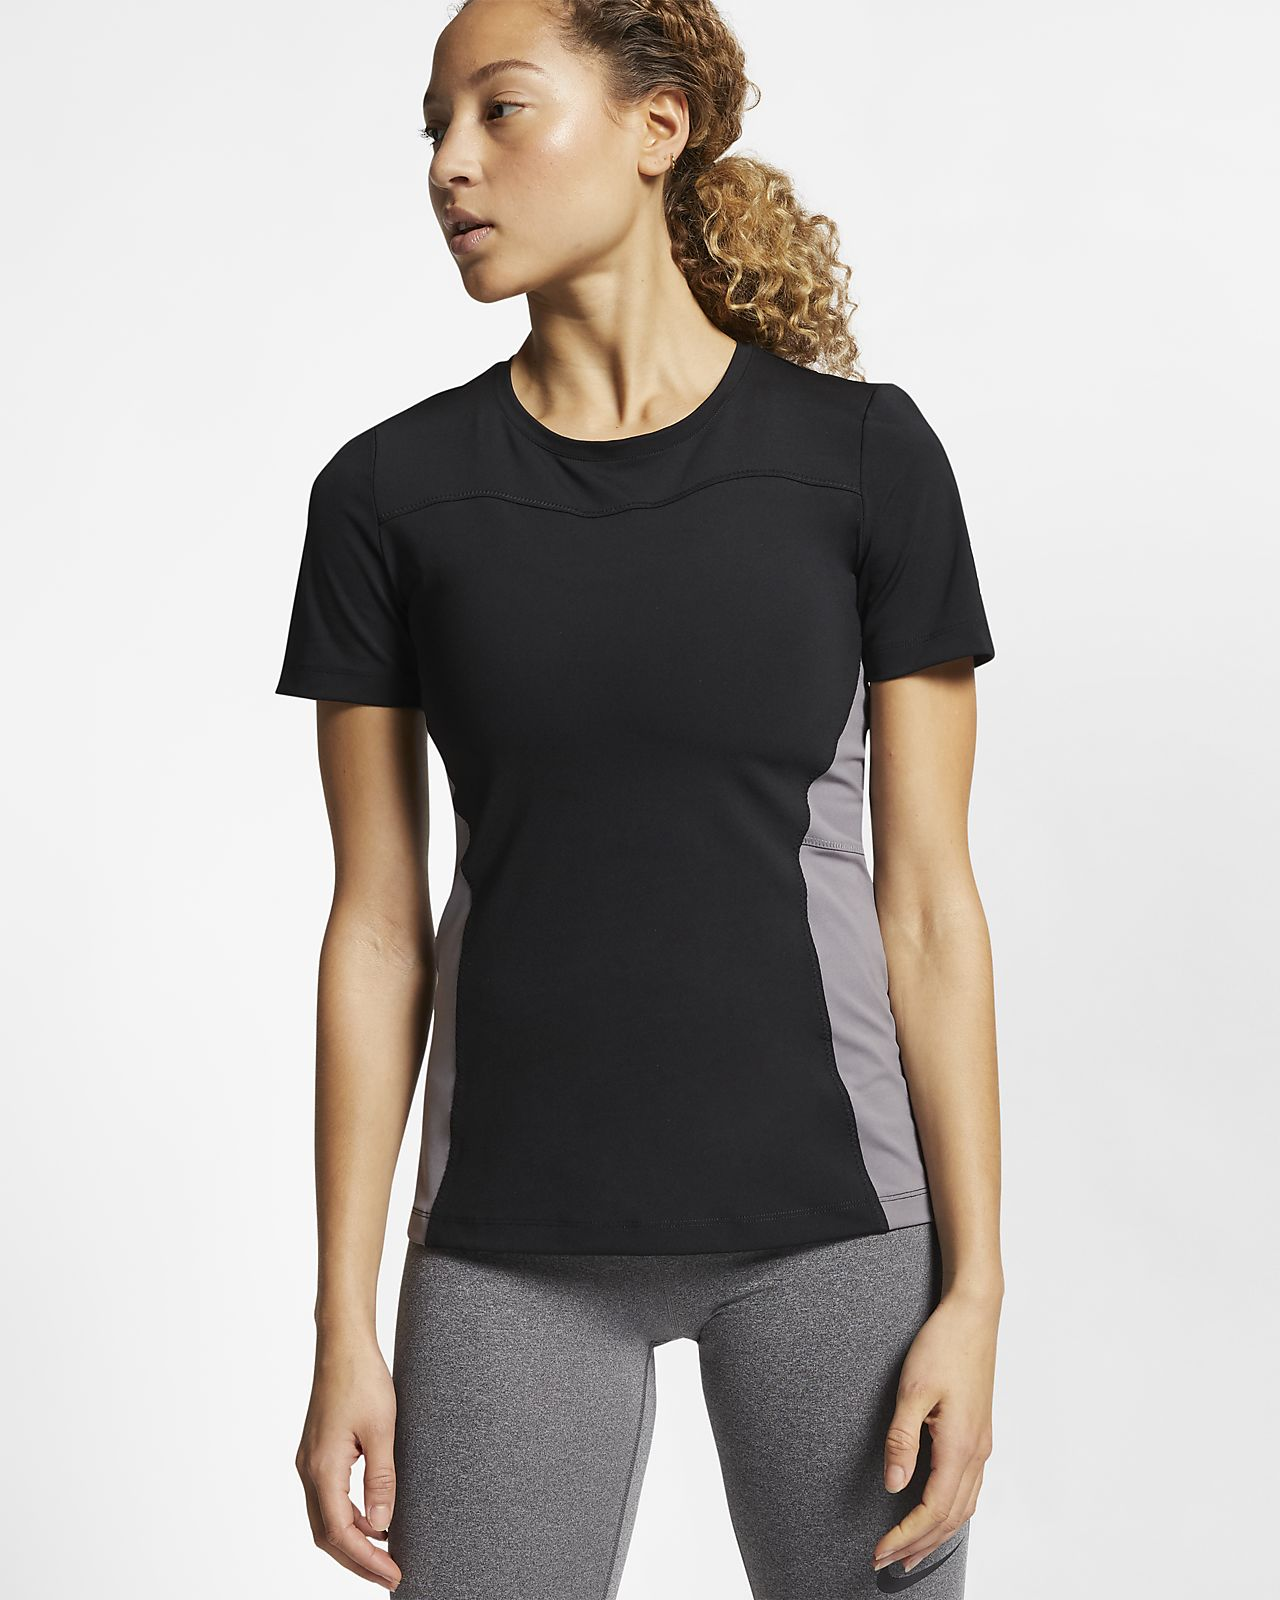 Nike Pro Women's Short-Sleeve Top